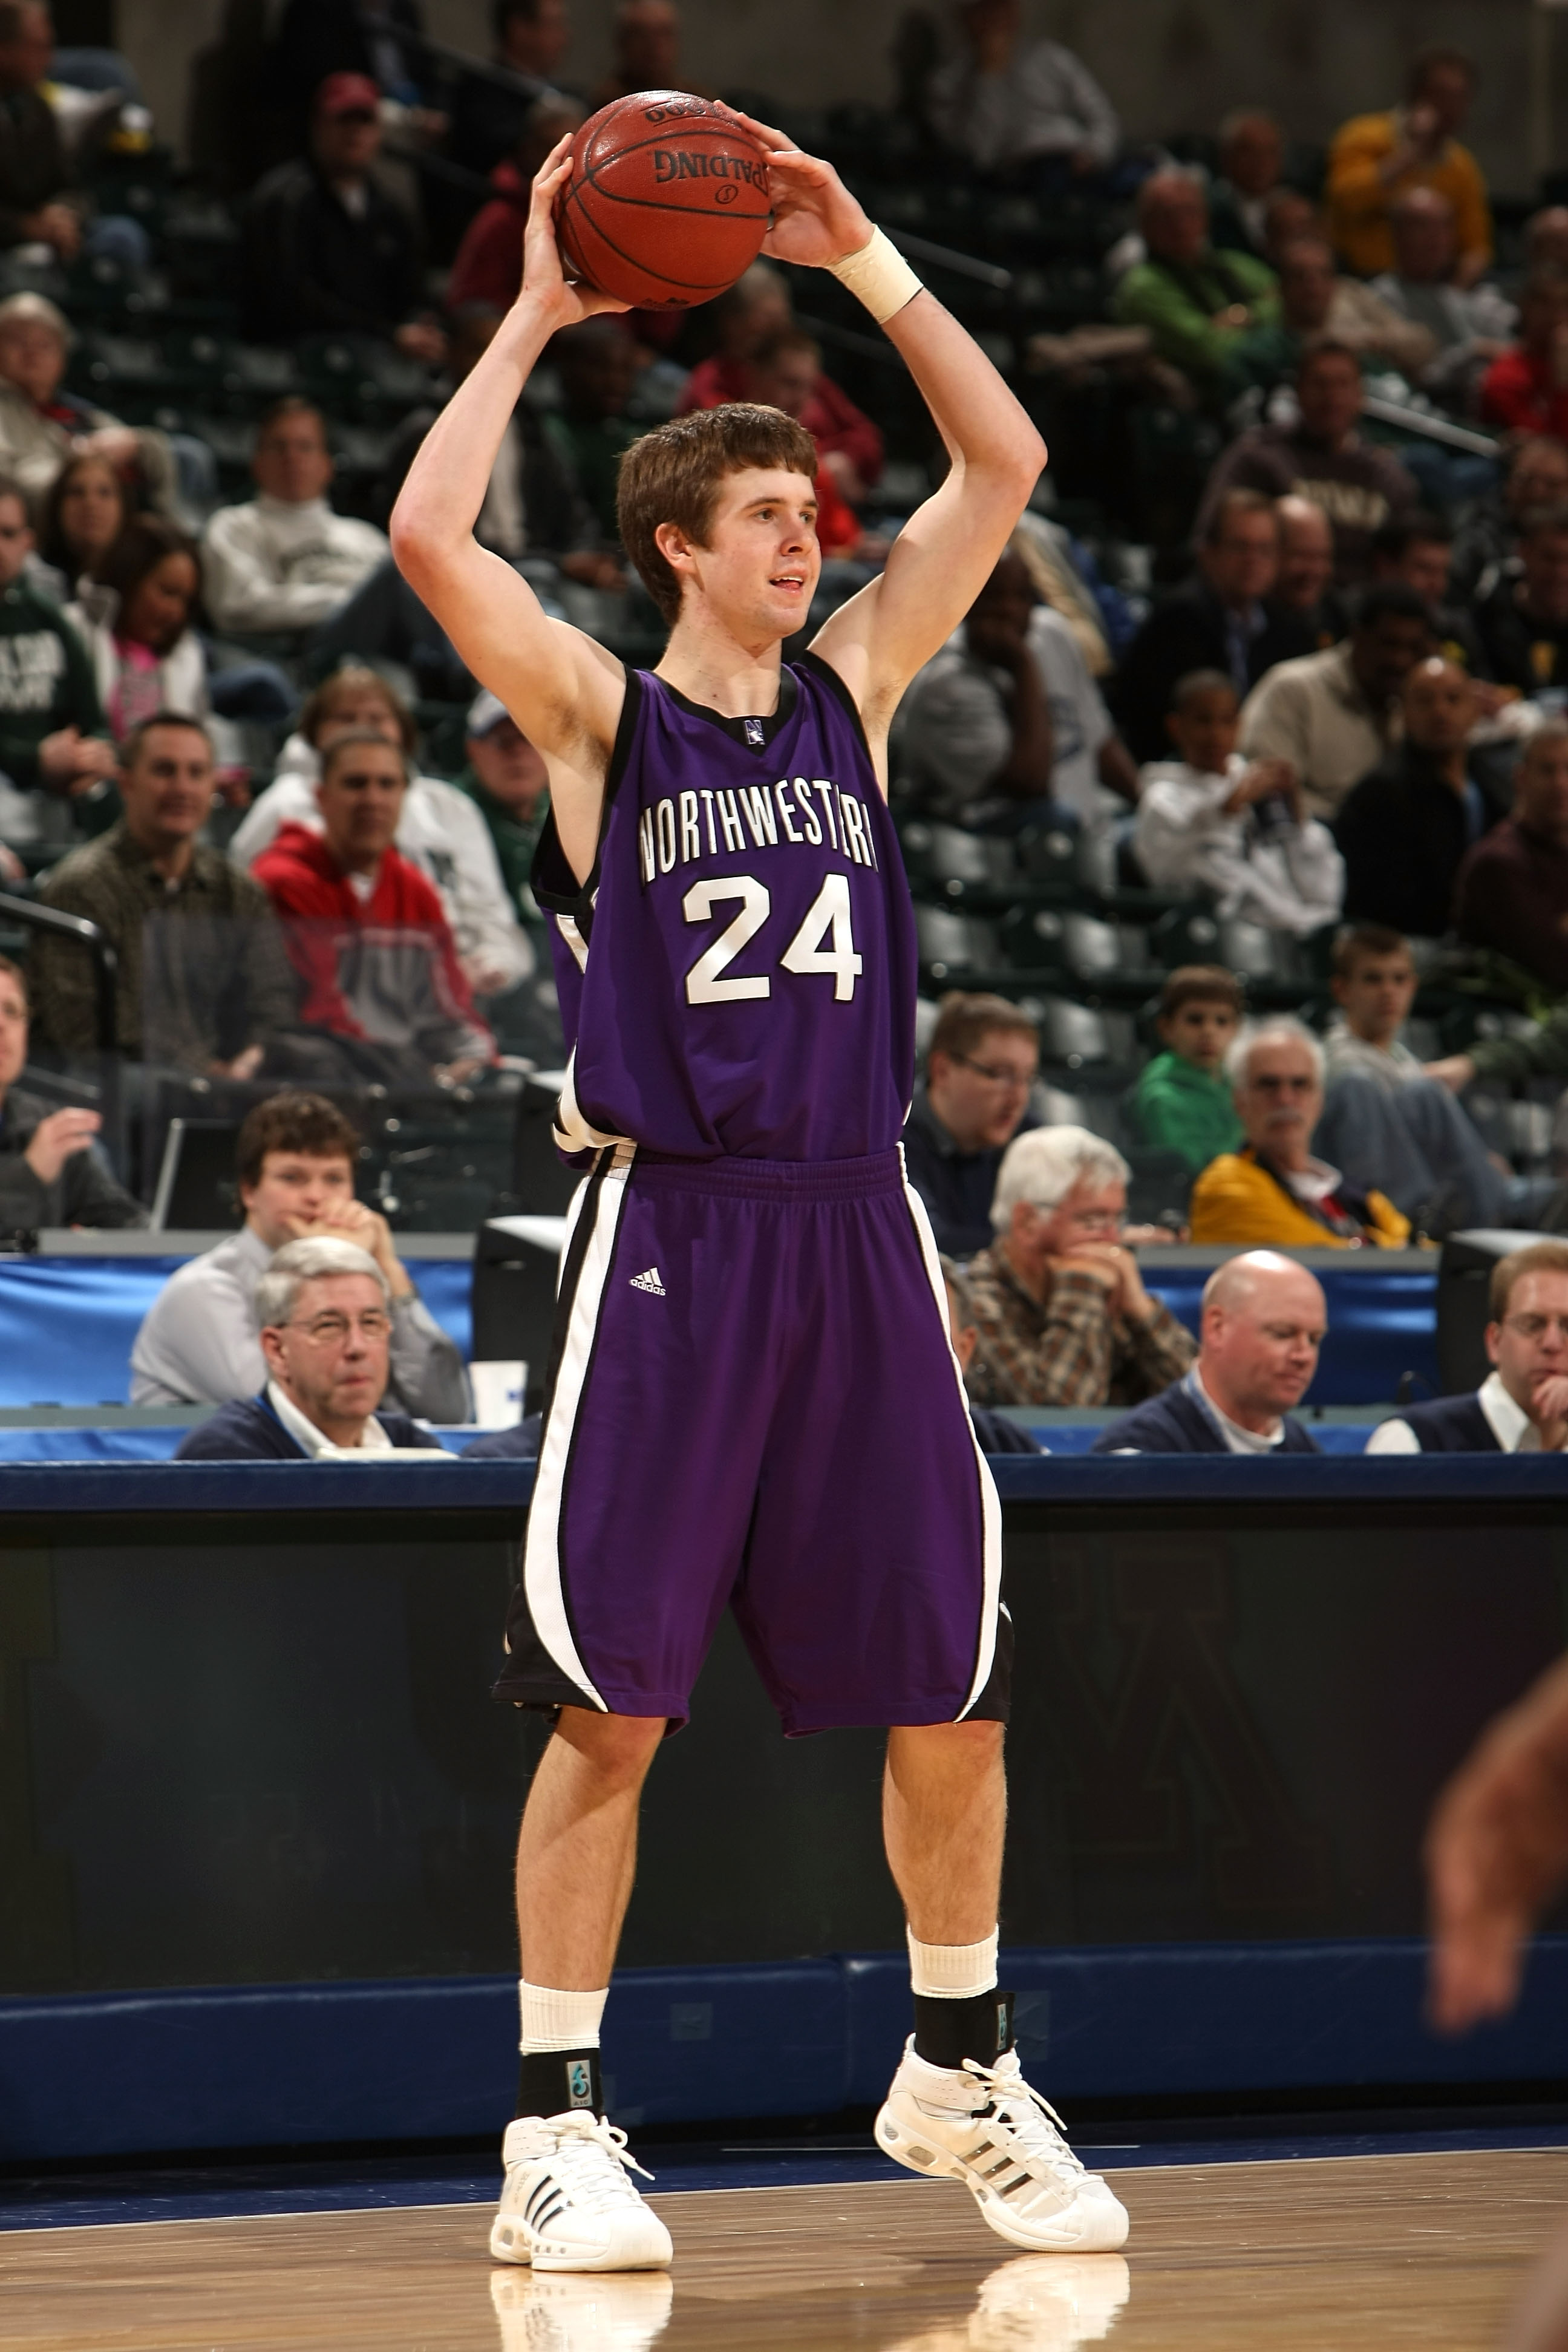 INDIANAPOLIS - MARCH 12:  John Shurna #24 of the Northwestern Wildcats looks to pass the ball against the Minnesota Golden Gophers during the first round of the Big Ten Men's Basketball Tournament at Conseco Fieldhouse on March 12, 2009 in Indianapolis, I